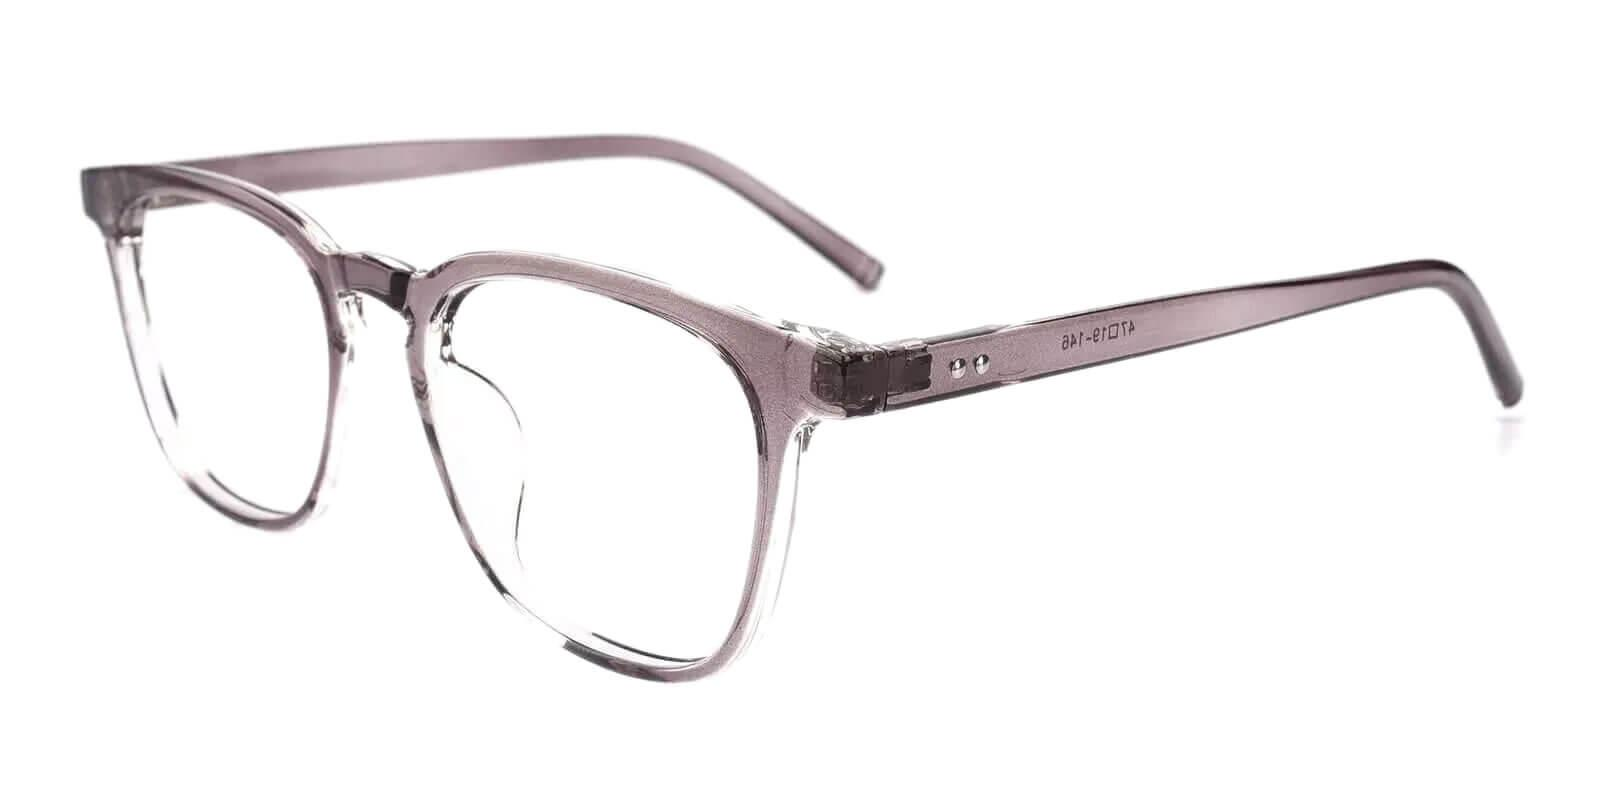 Zaire Purple TR Eyeglasses , UniversalBridgeFit Frames from ABBE Glasses